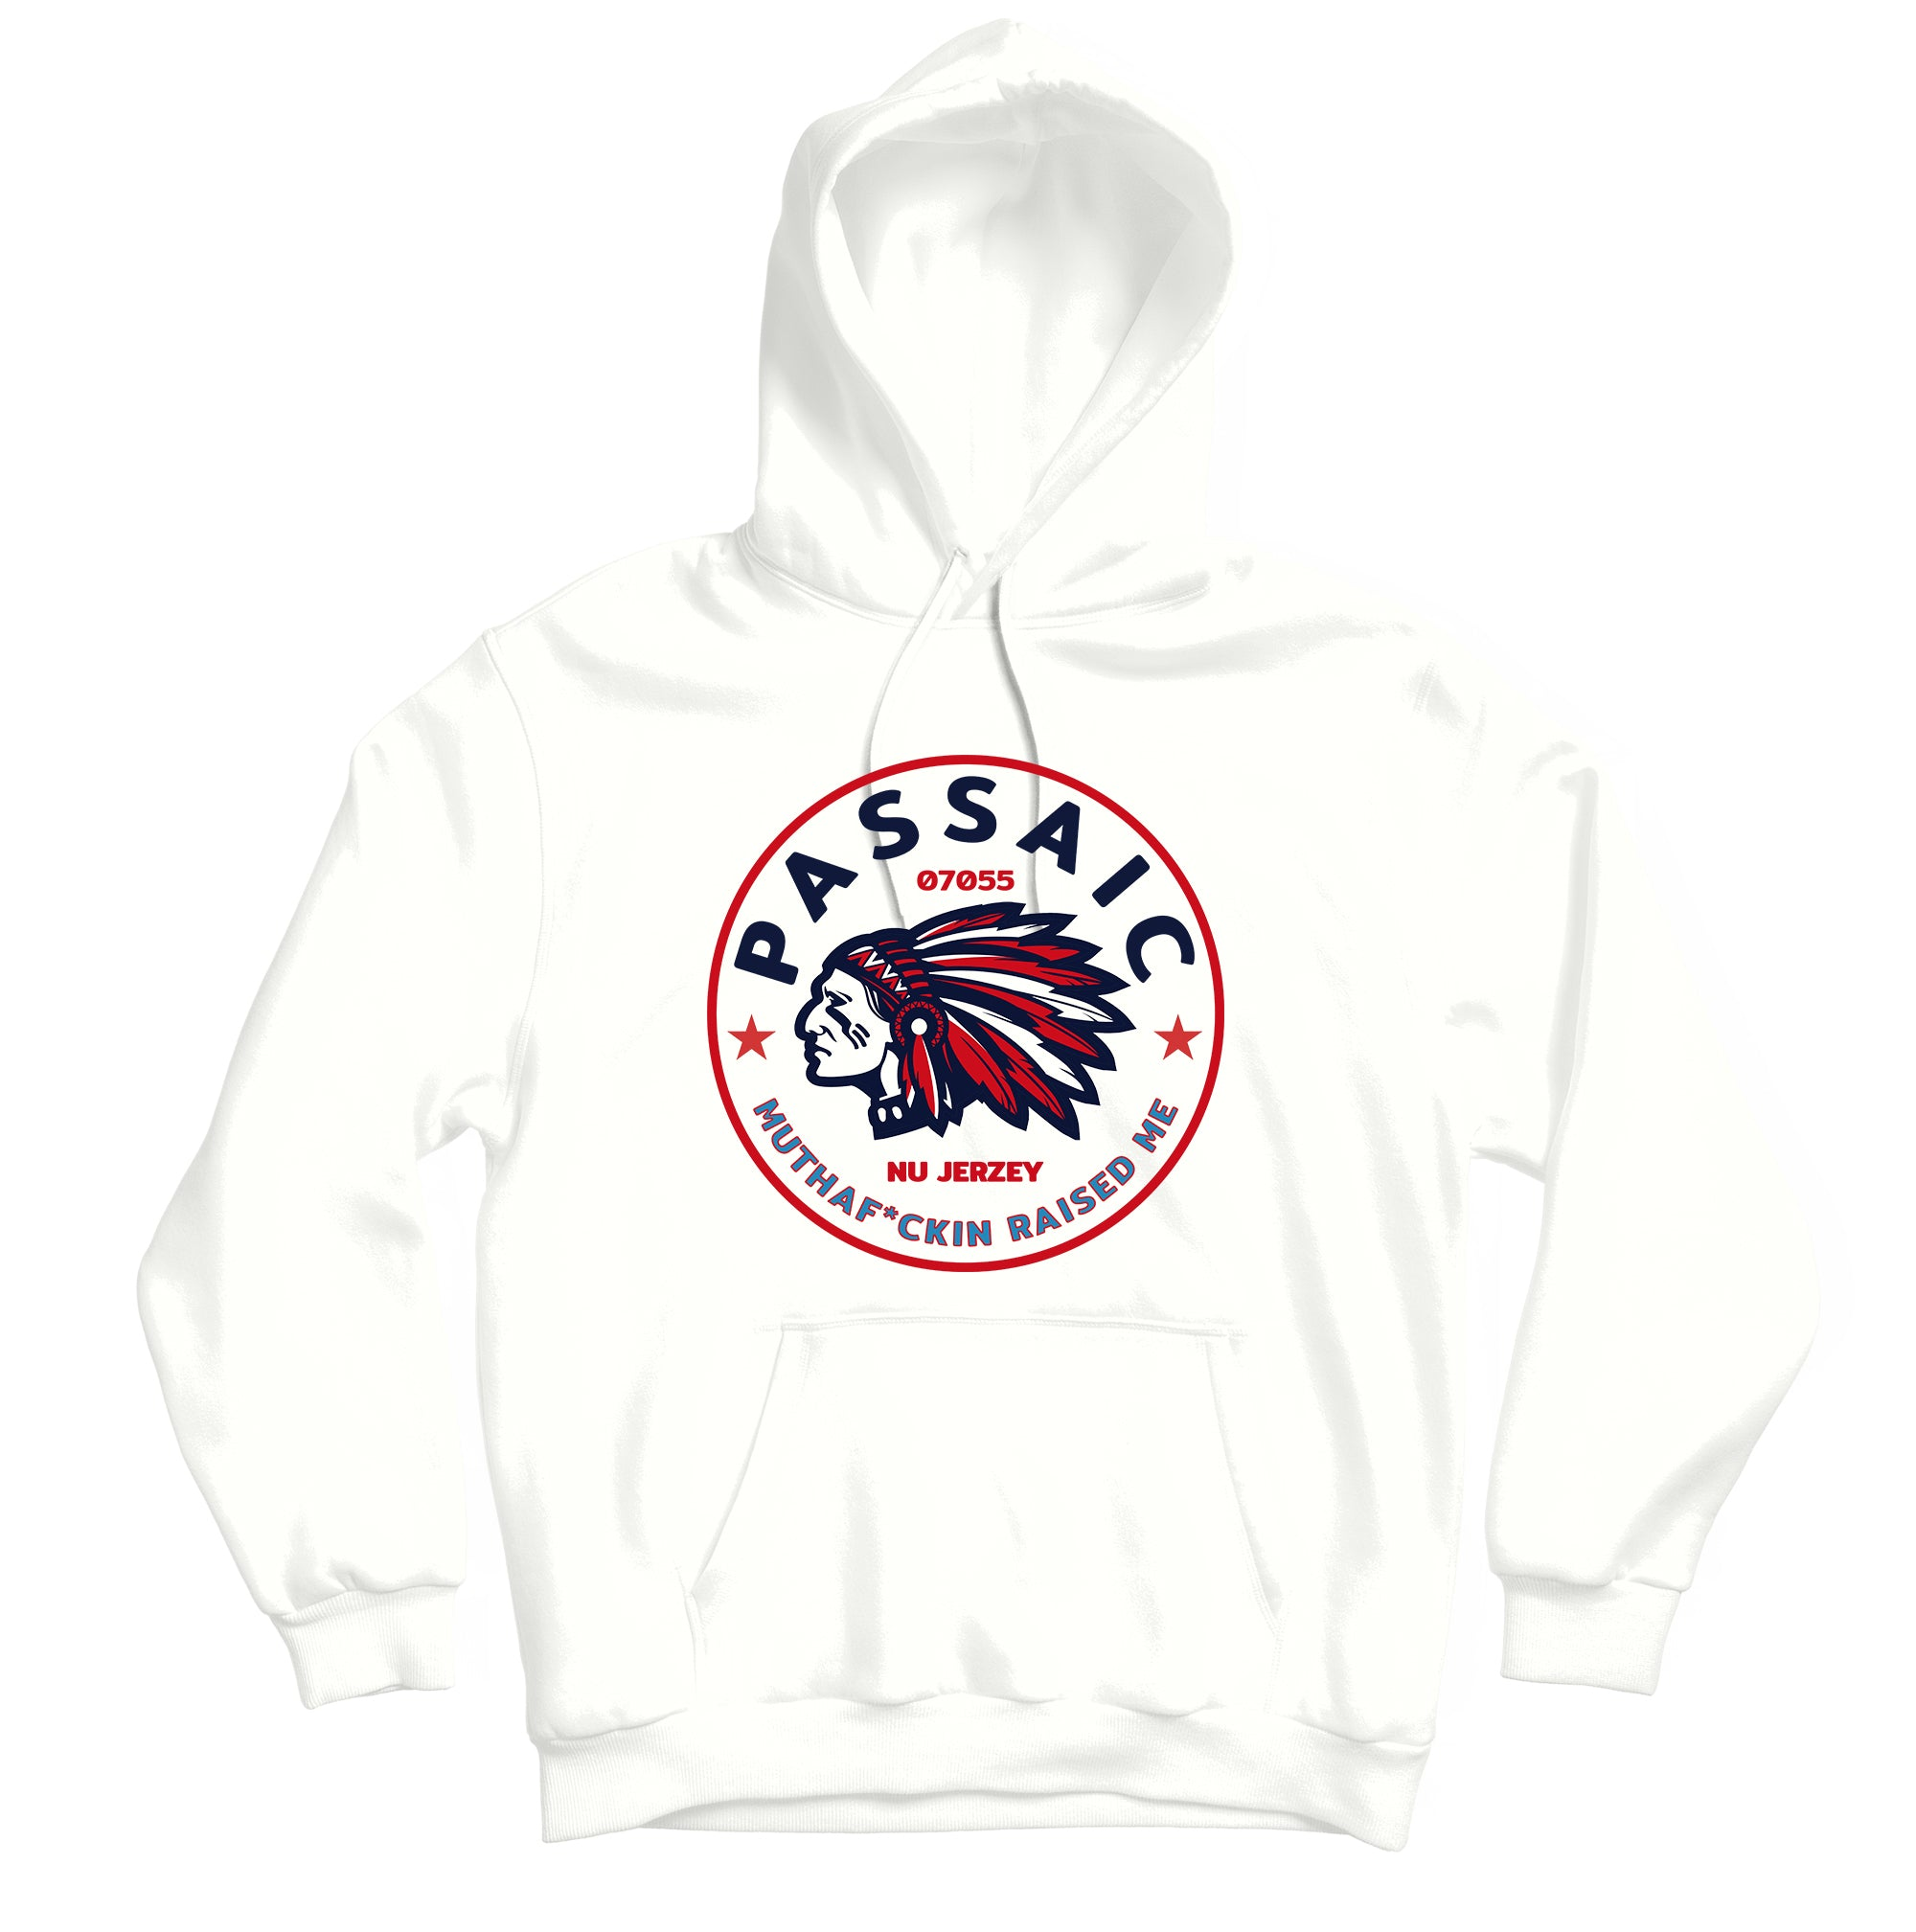 Passaic Raised Me Hoodie - TOPS, TSS CUSTOM GRPHX, SNEAKER STUDIO, GOLDEN GILT, DESIGN BY TSS